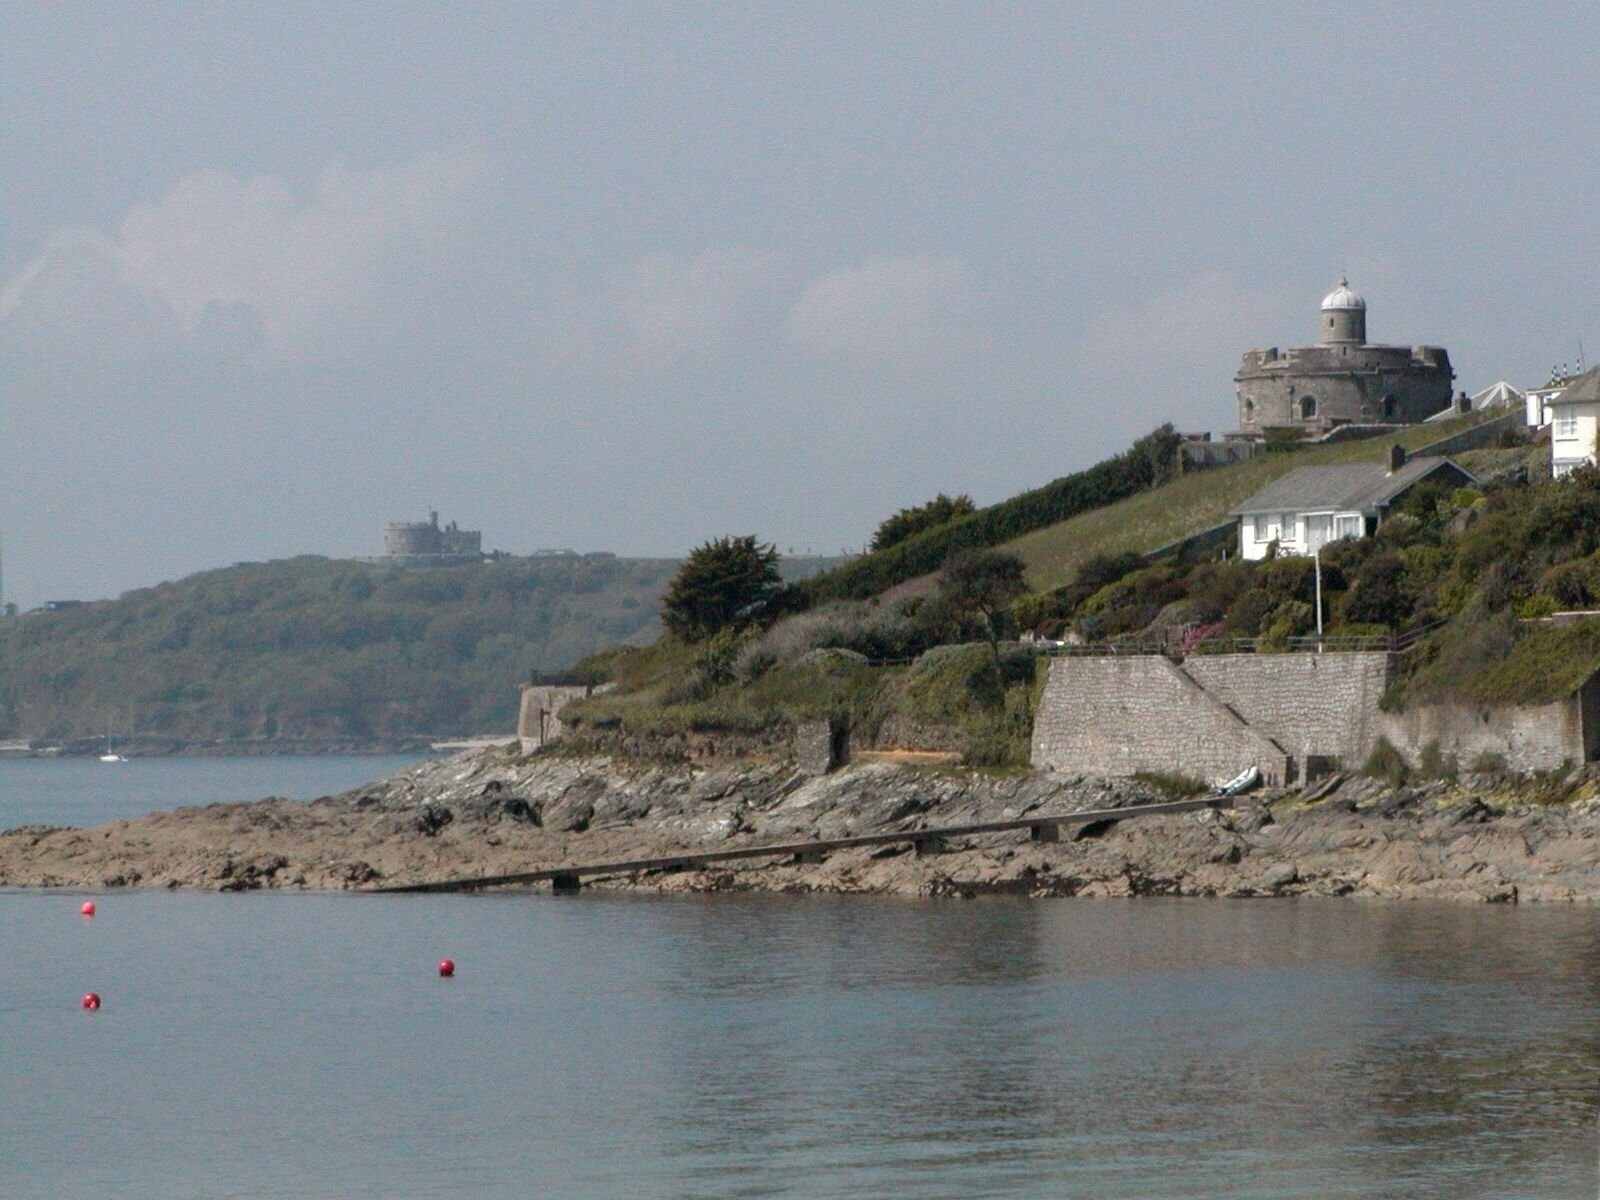 St Mawes (UK Parliament constituency)